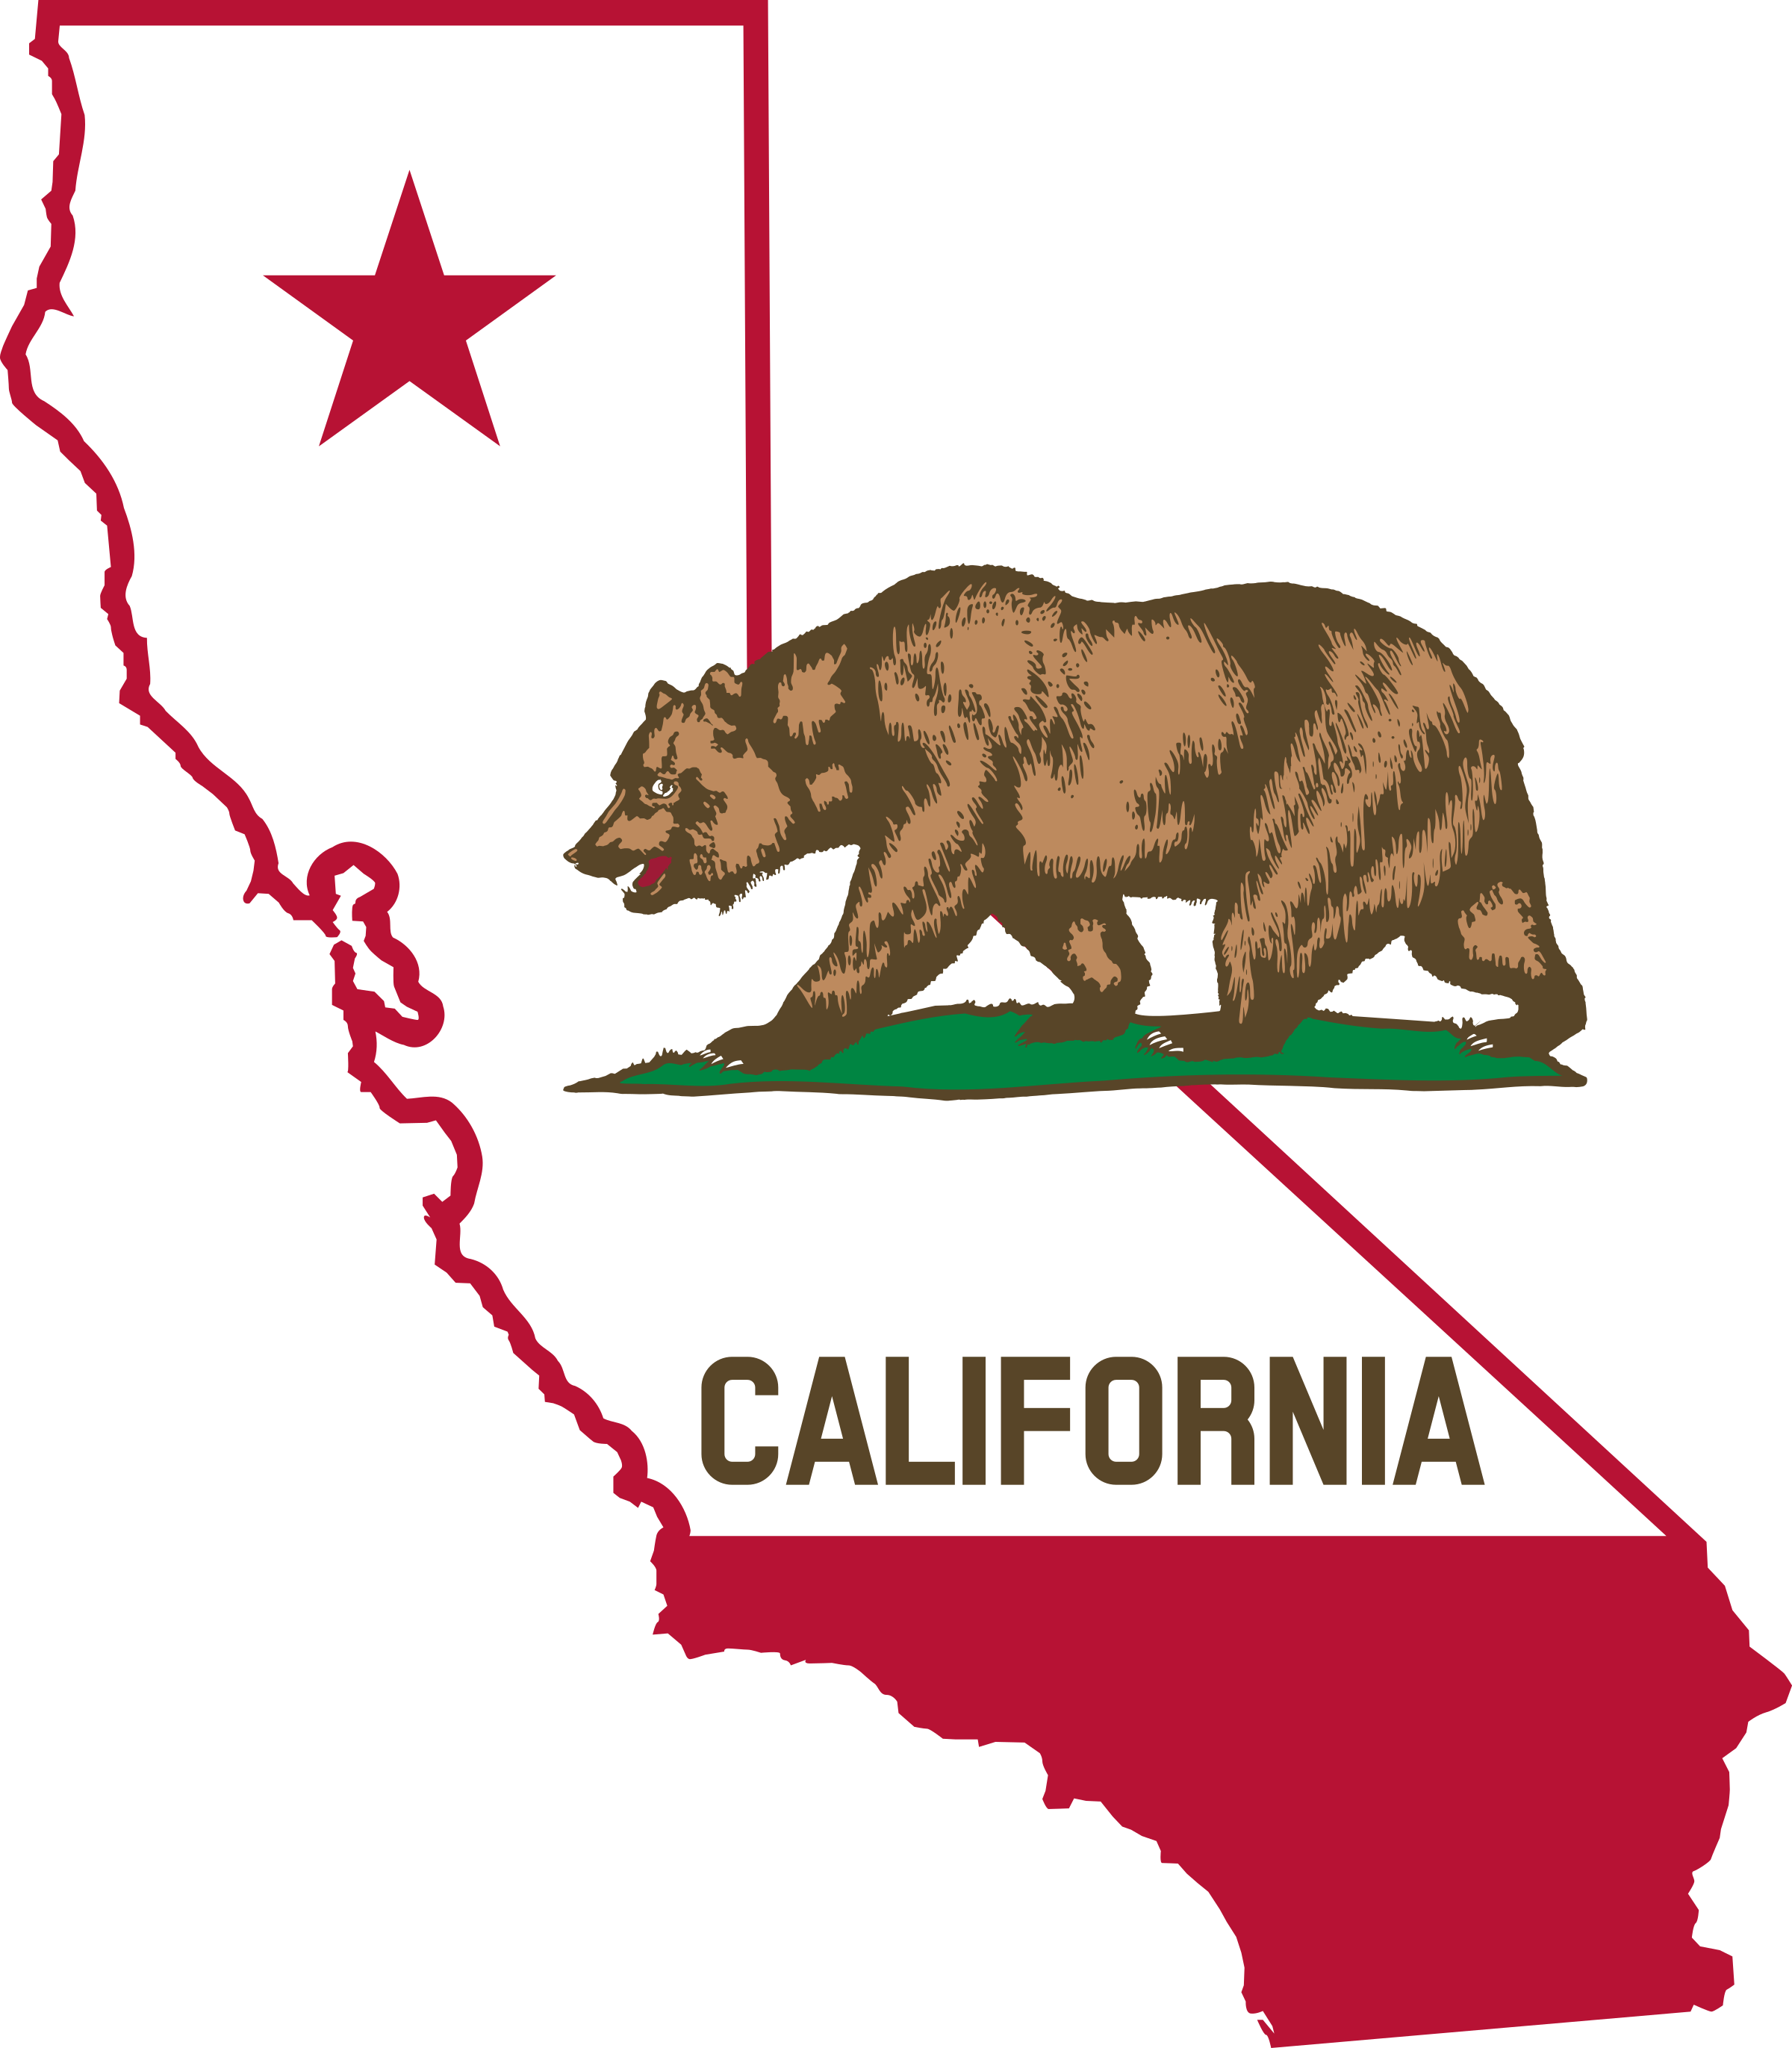 Amazing Flag Of California Pictures & Backgrounds